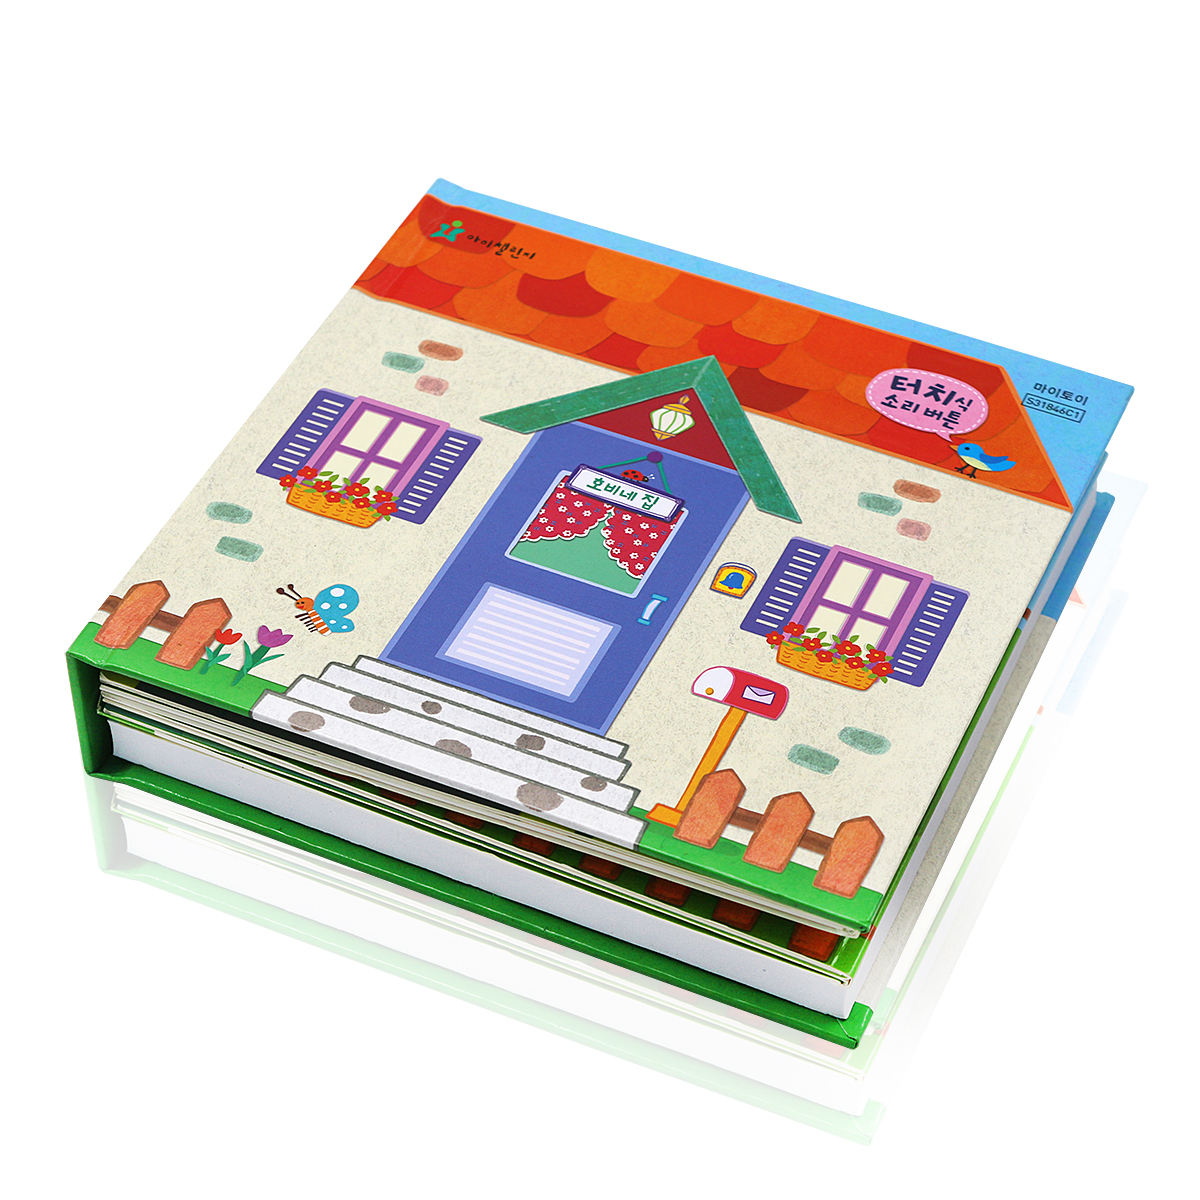 3D books for children kids sticker book printing can be customized